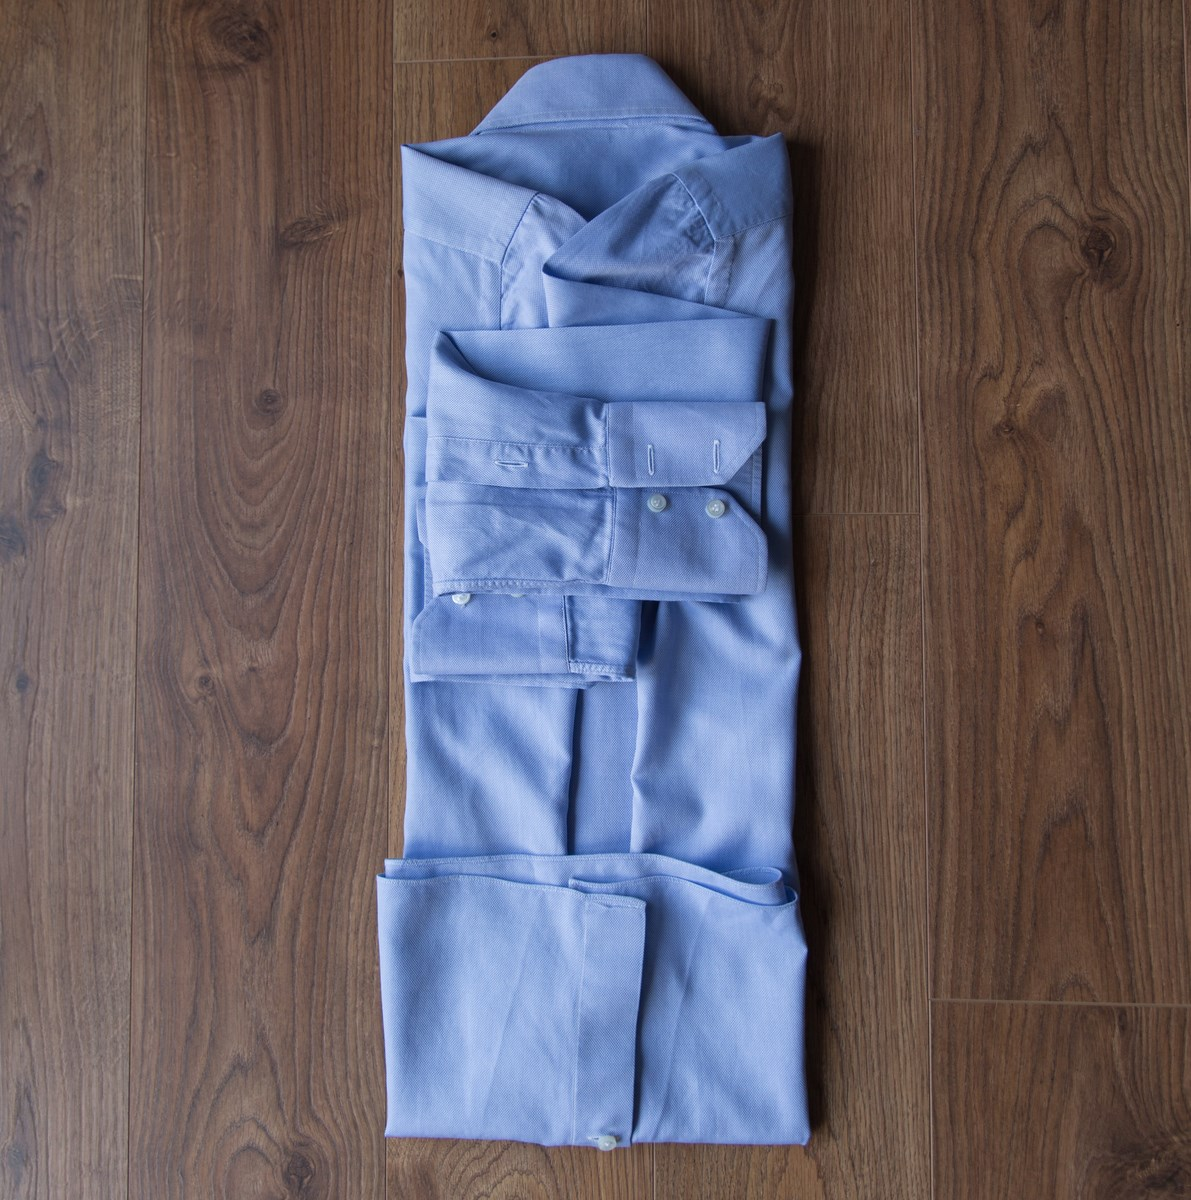 How to fold a shirt 4